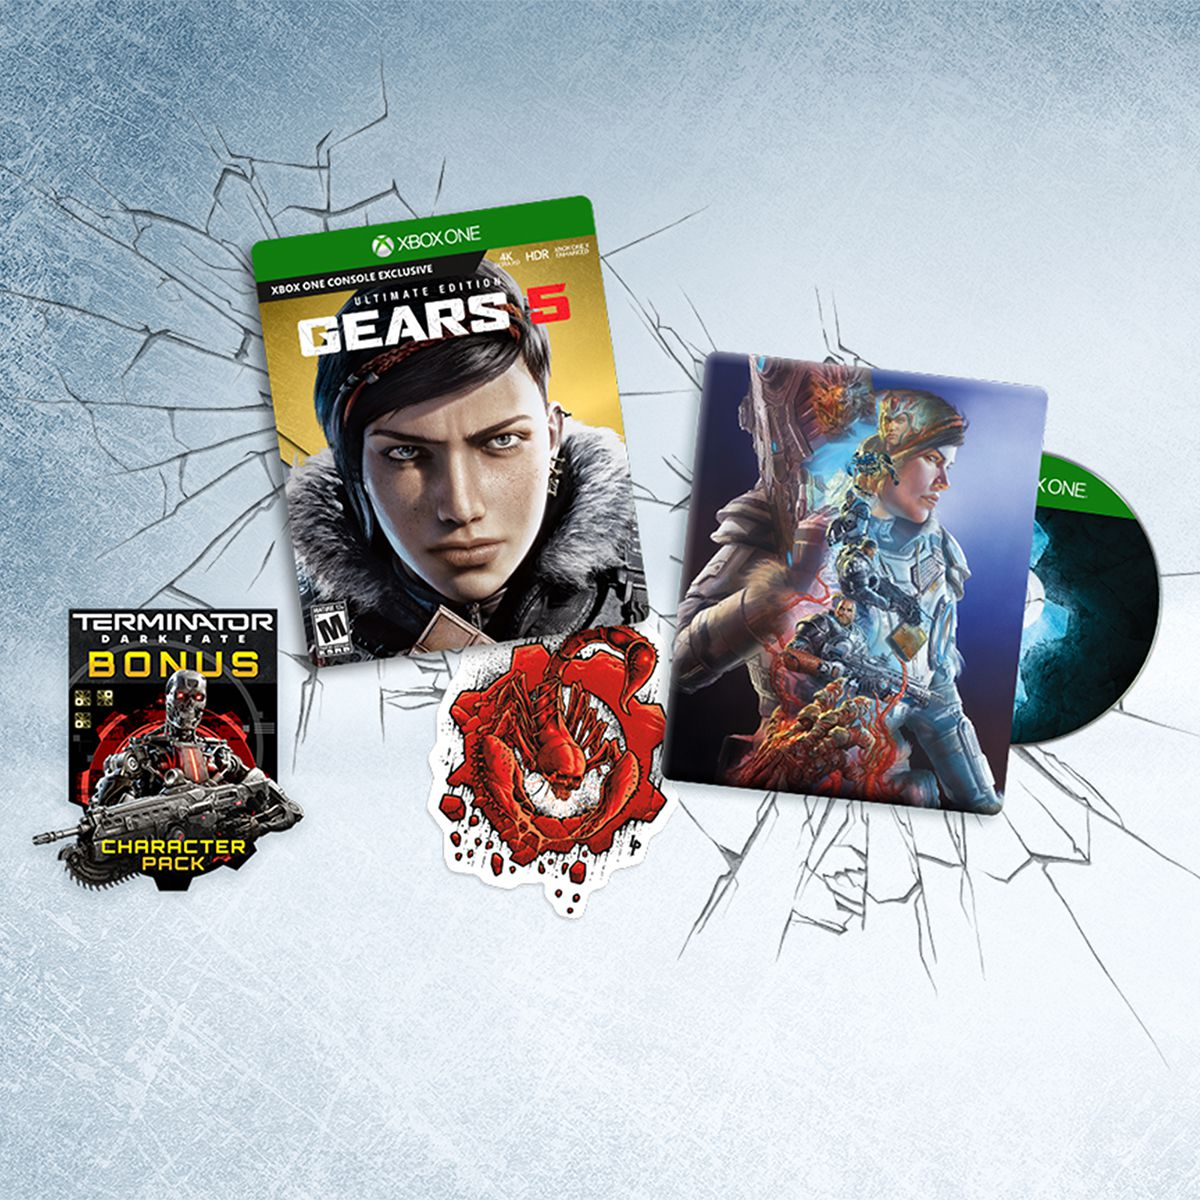 Components of the Gears 5 ultimate Edition